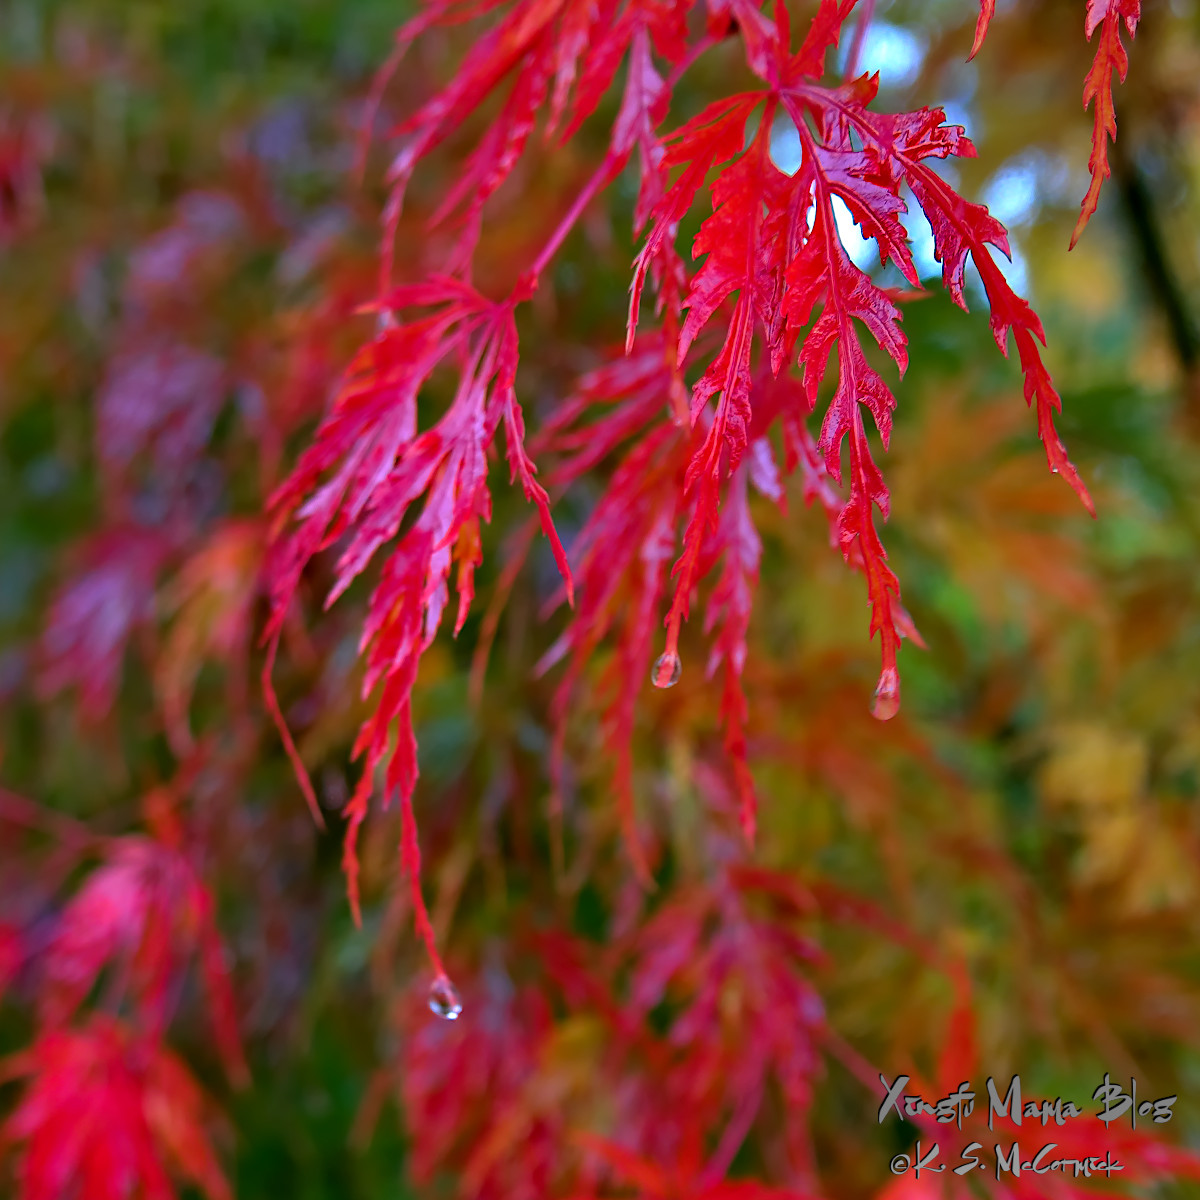 Bright red lace-leaf maple leaves dripping.